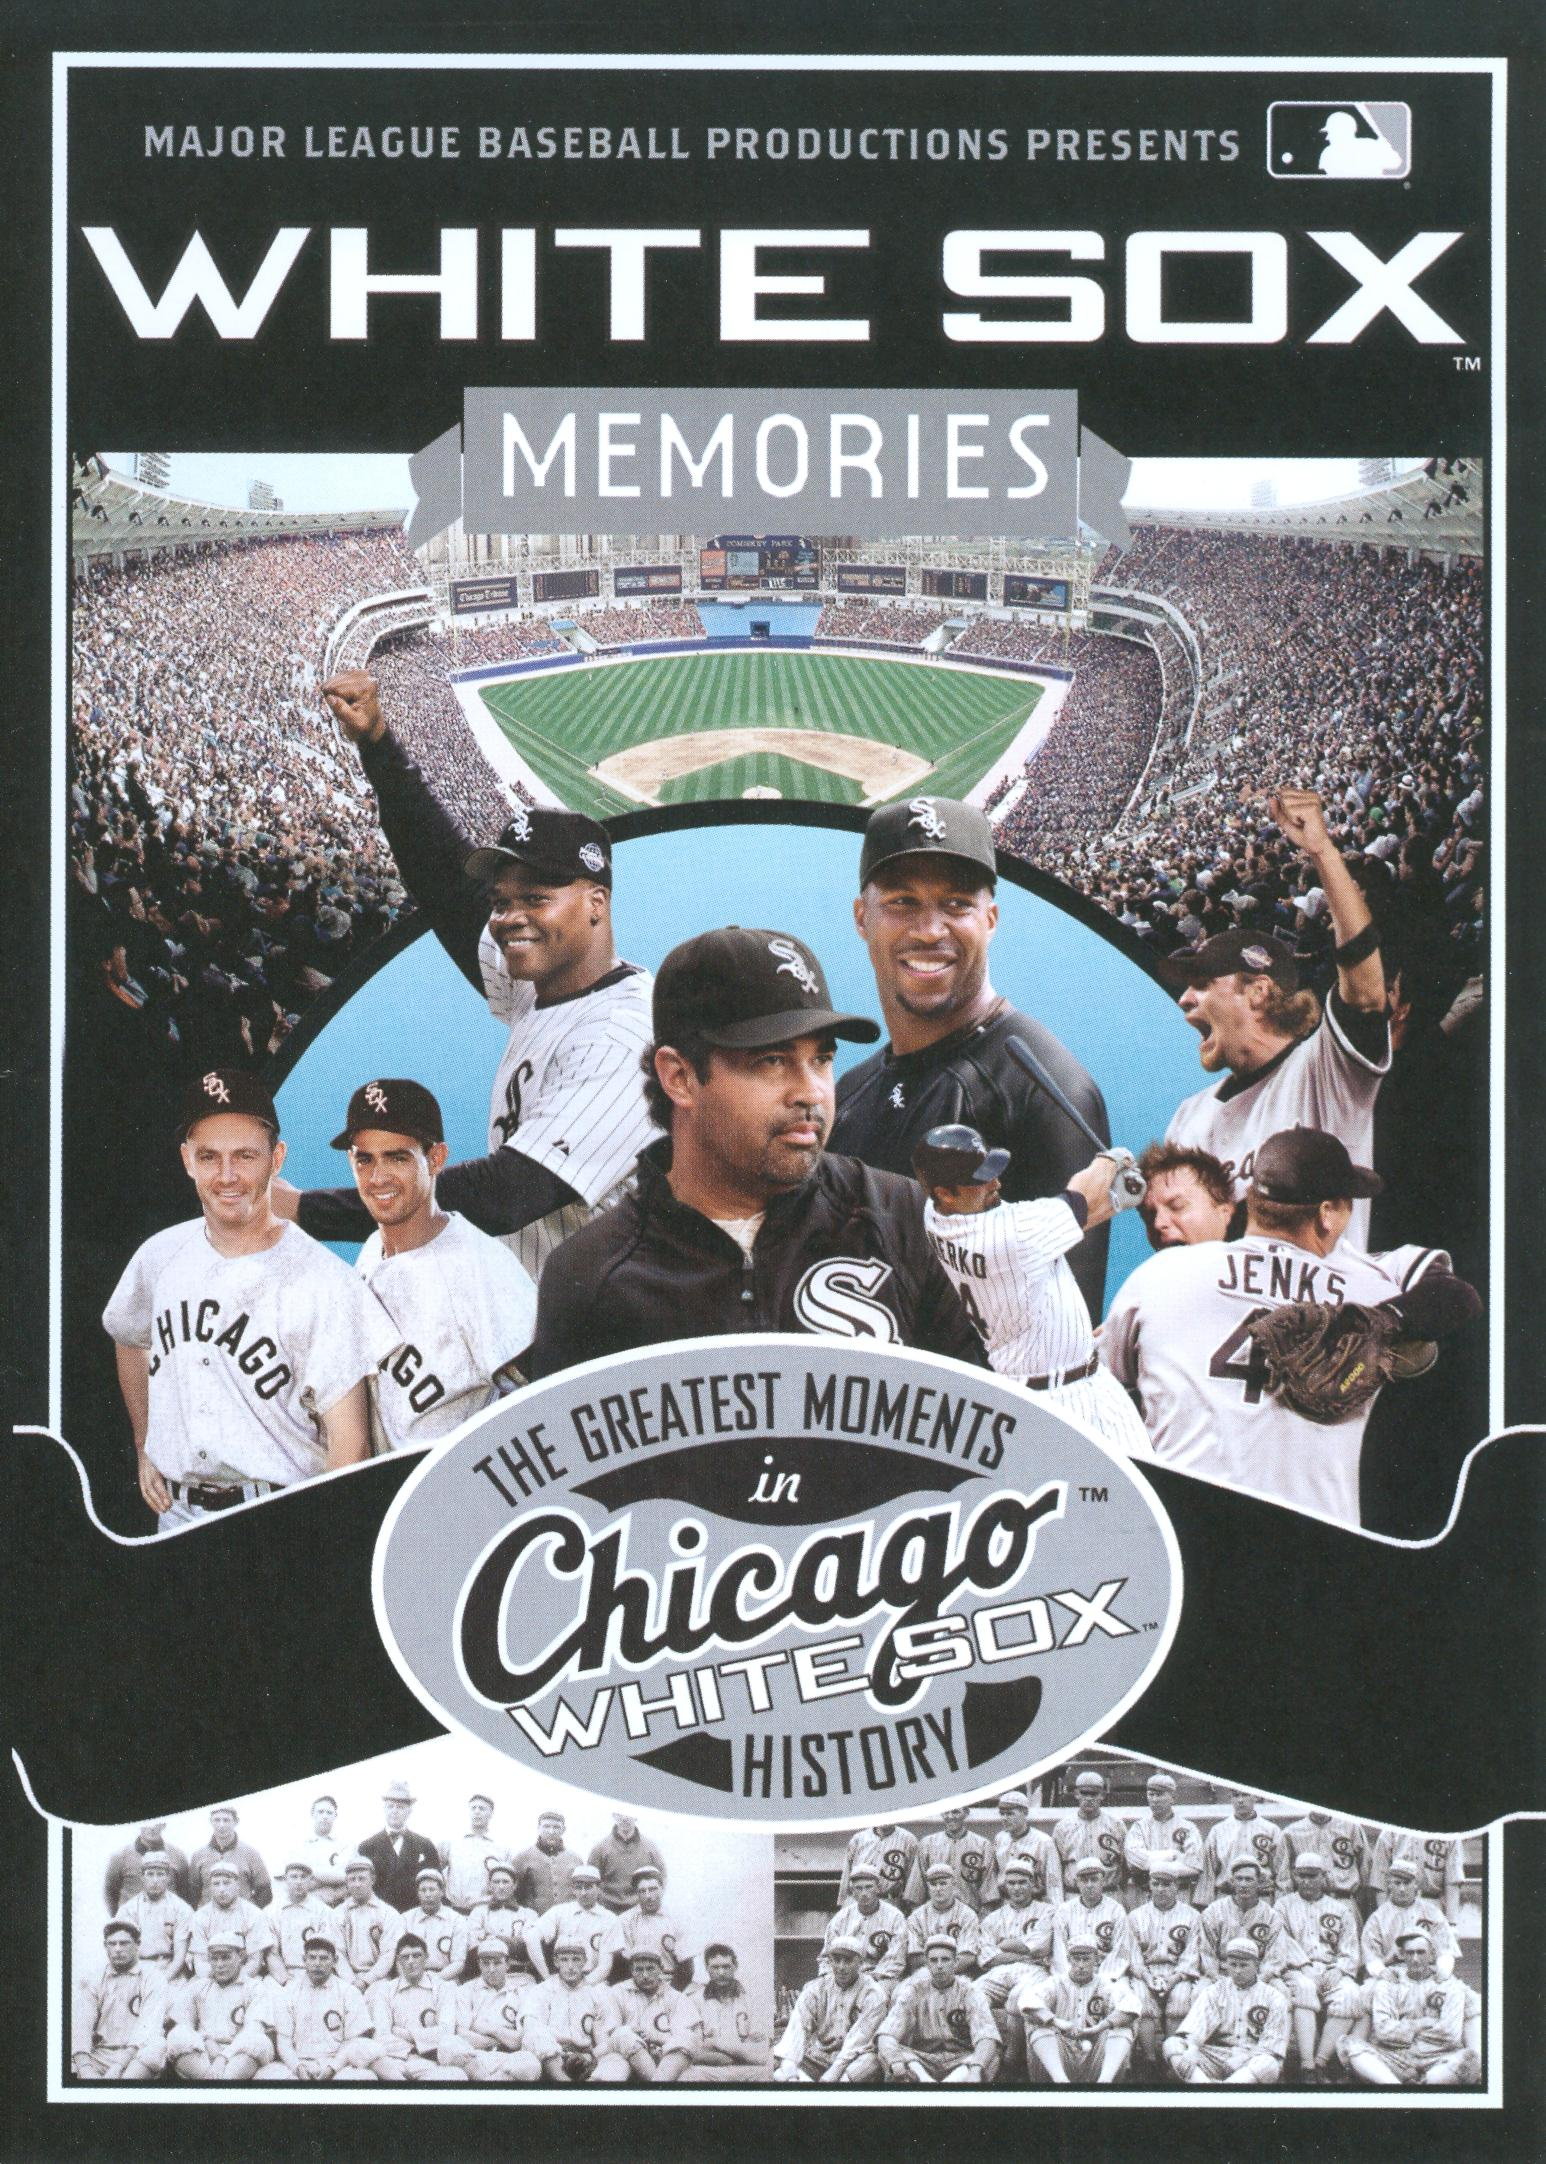 a brief history of the chicago white sox Please note that players may not be in the uniform of the correct team in these images.